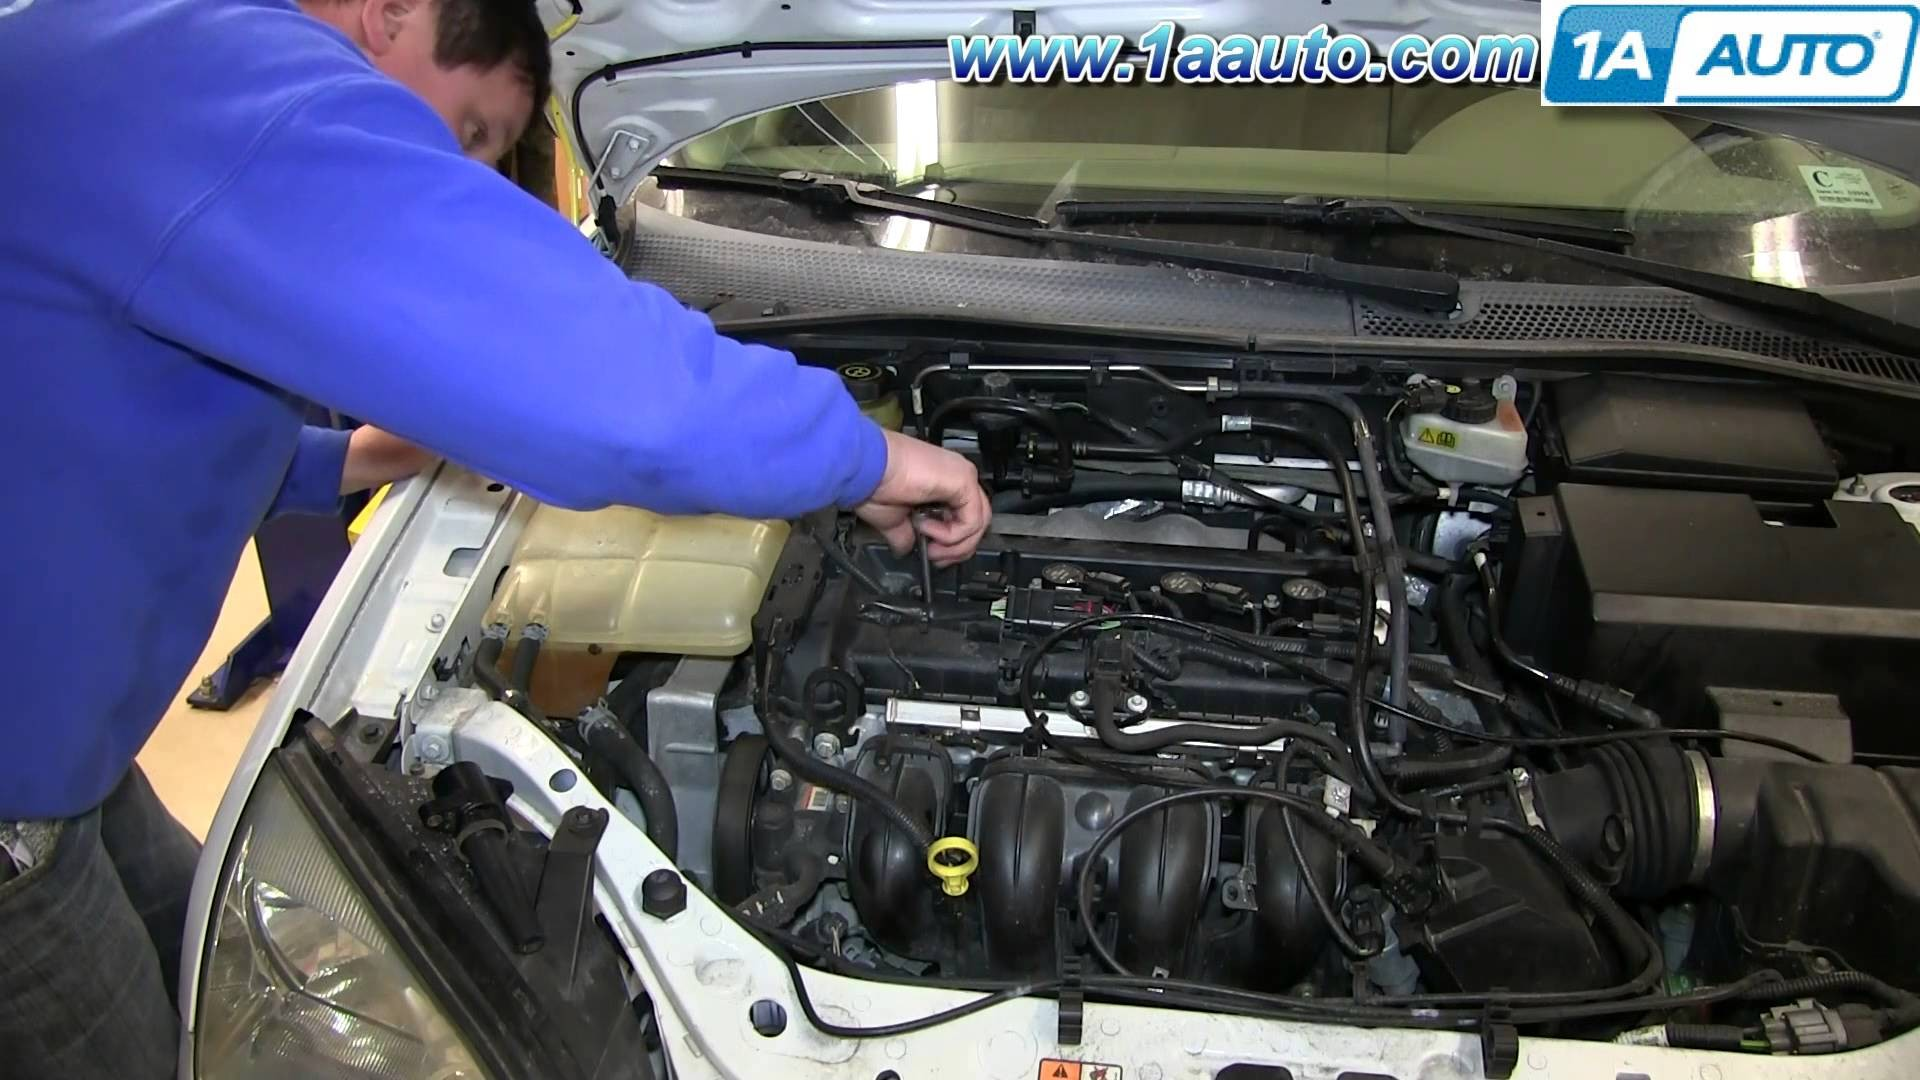 2002 Ford Focus Zetec Diagram Reveolution Of Wiring Engine How To Install Replace Spark Rh Detoxicrecenze Com S